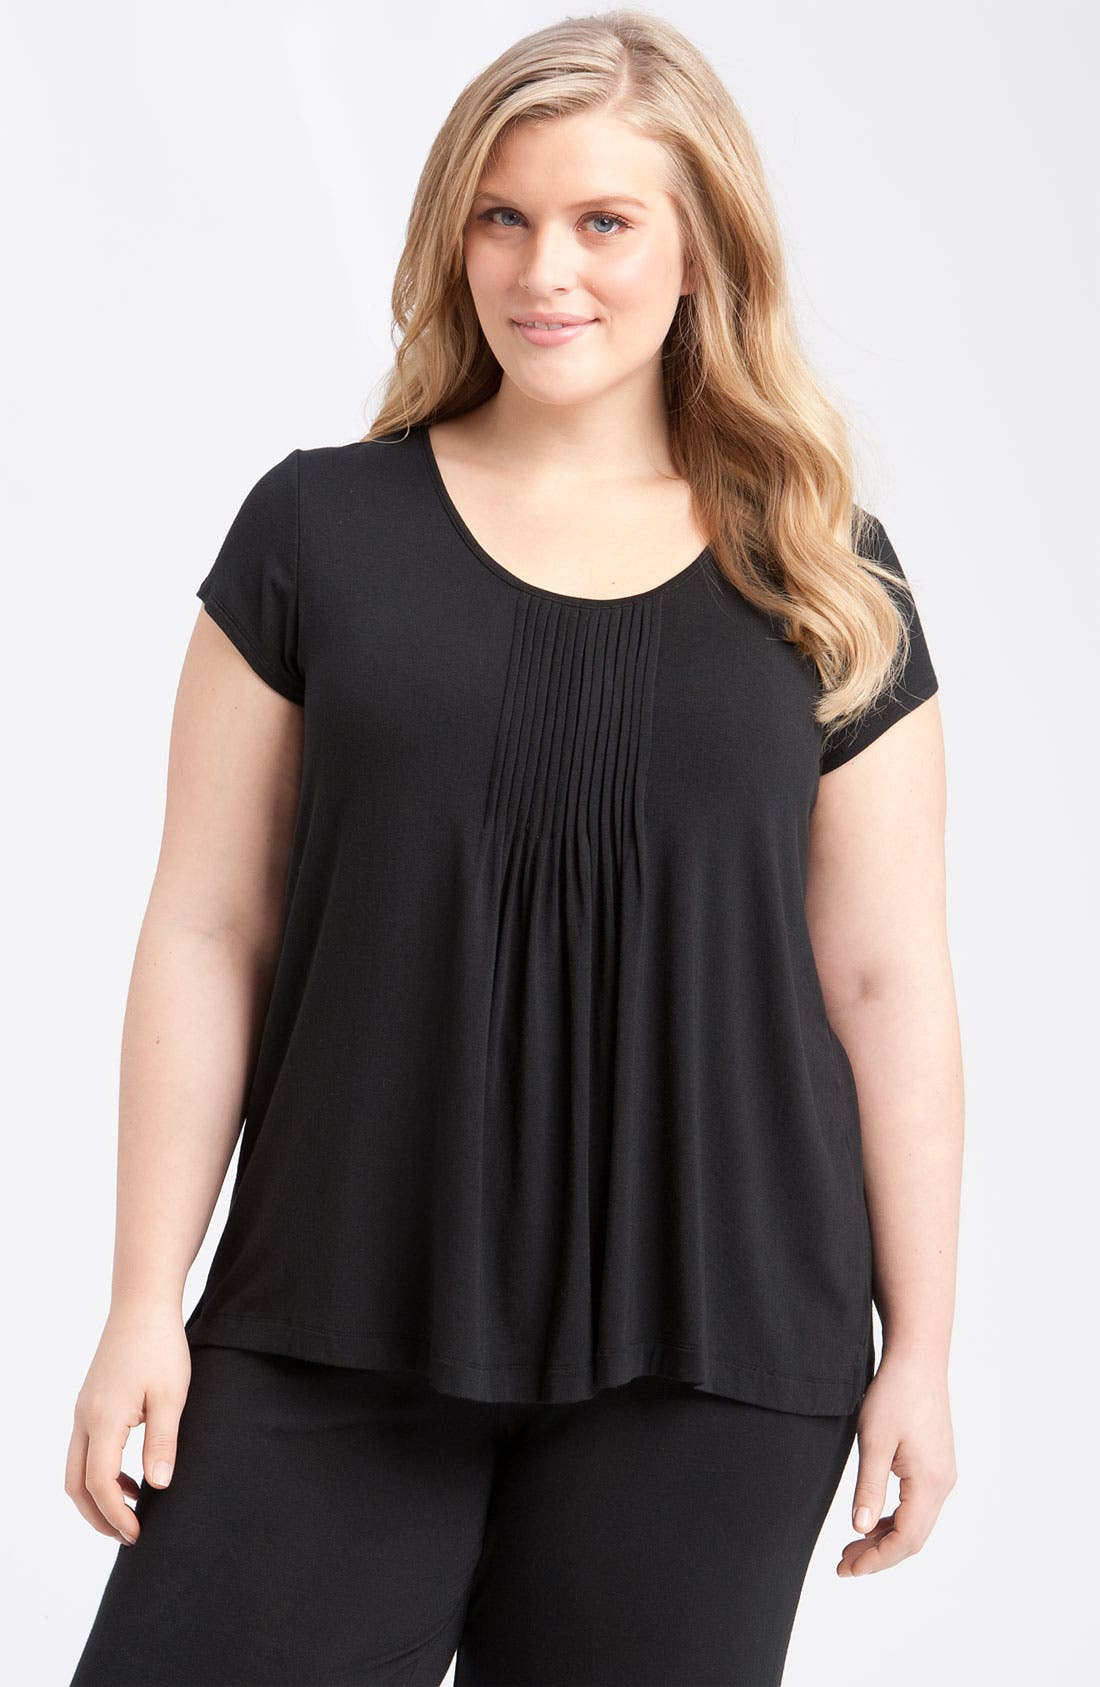 Alternate Image 1 Selected - DKNY '7 Easy Pieces' Pintuck Top (Plus Size)